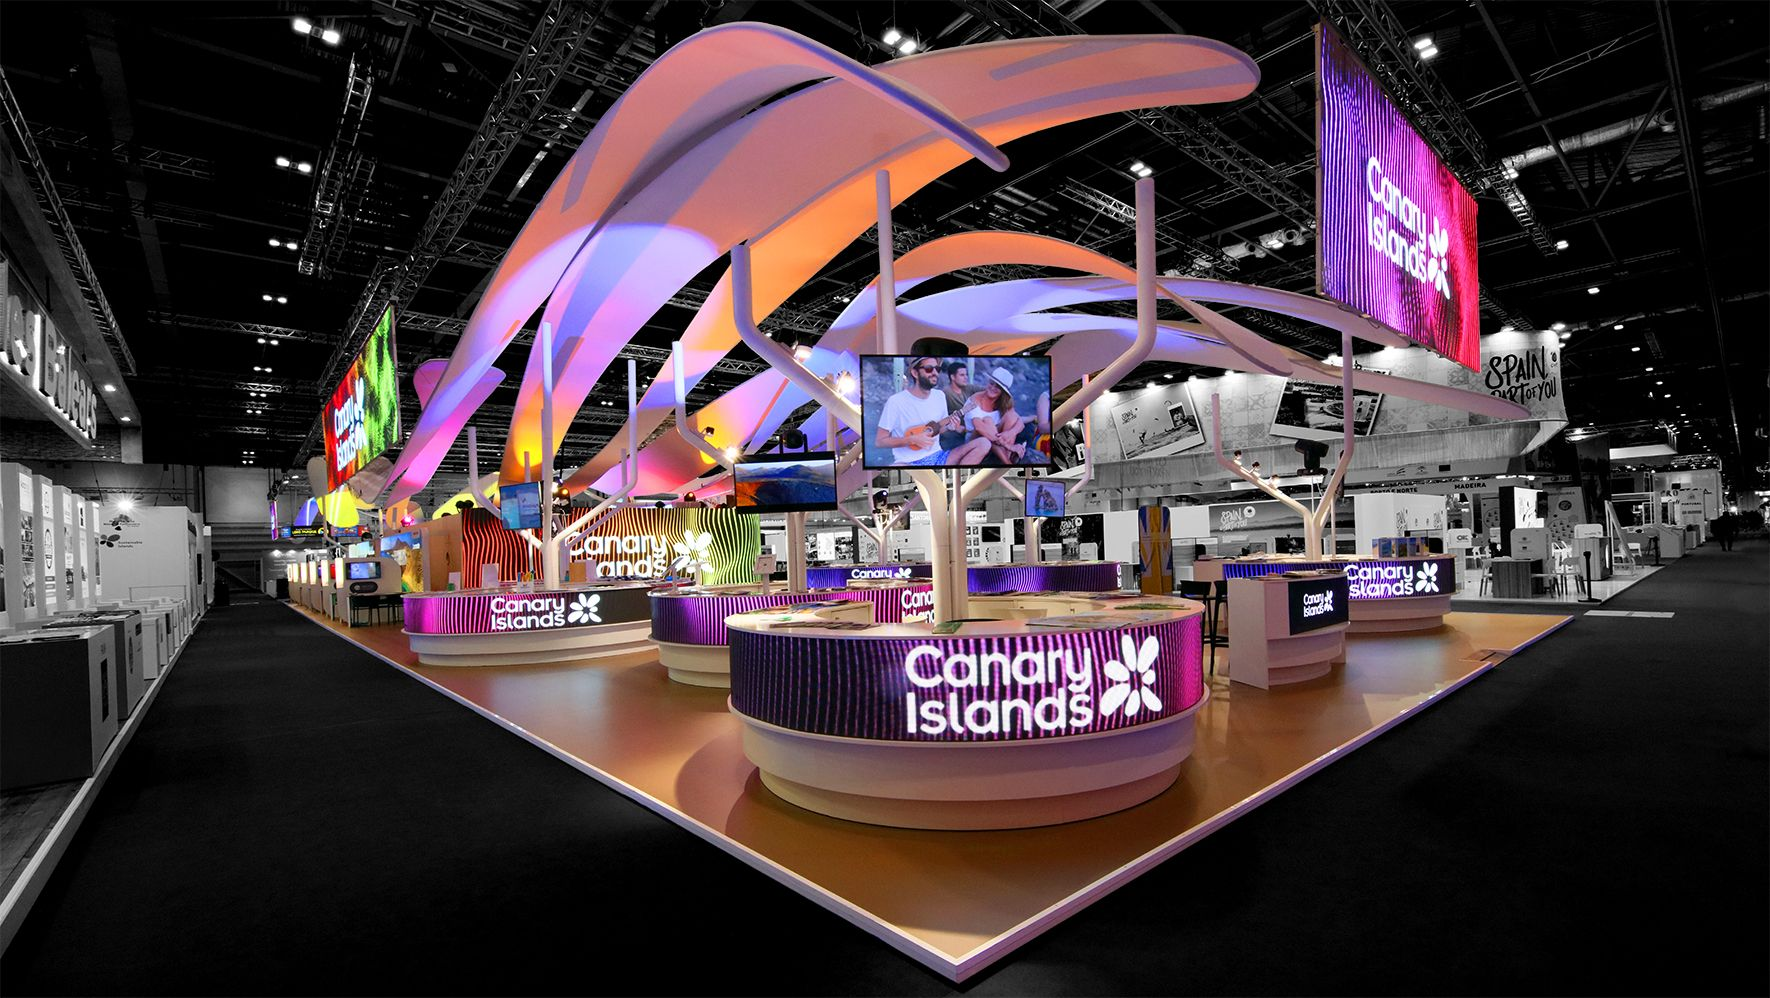 #standdesign awarded by #worldexhibitionstandawards + #wtmlondon + #fitur and built in #ifema #madrid + #excellondon + #messeberlin #thistooshallpass  #escatoint  #ged2020